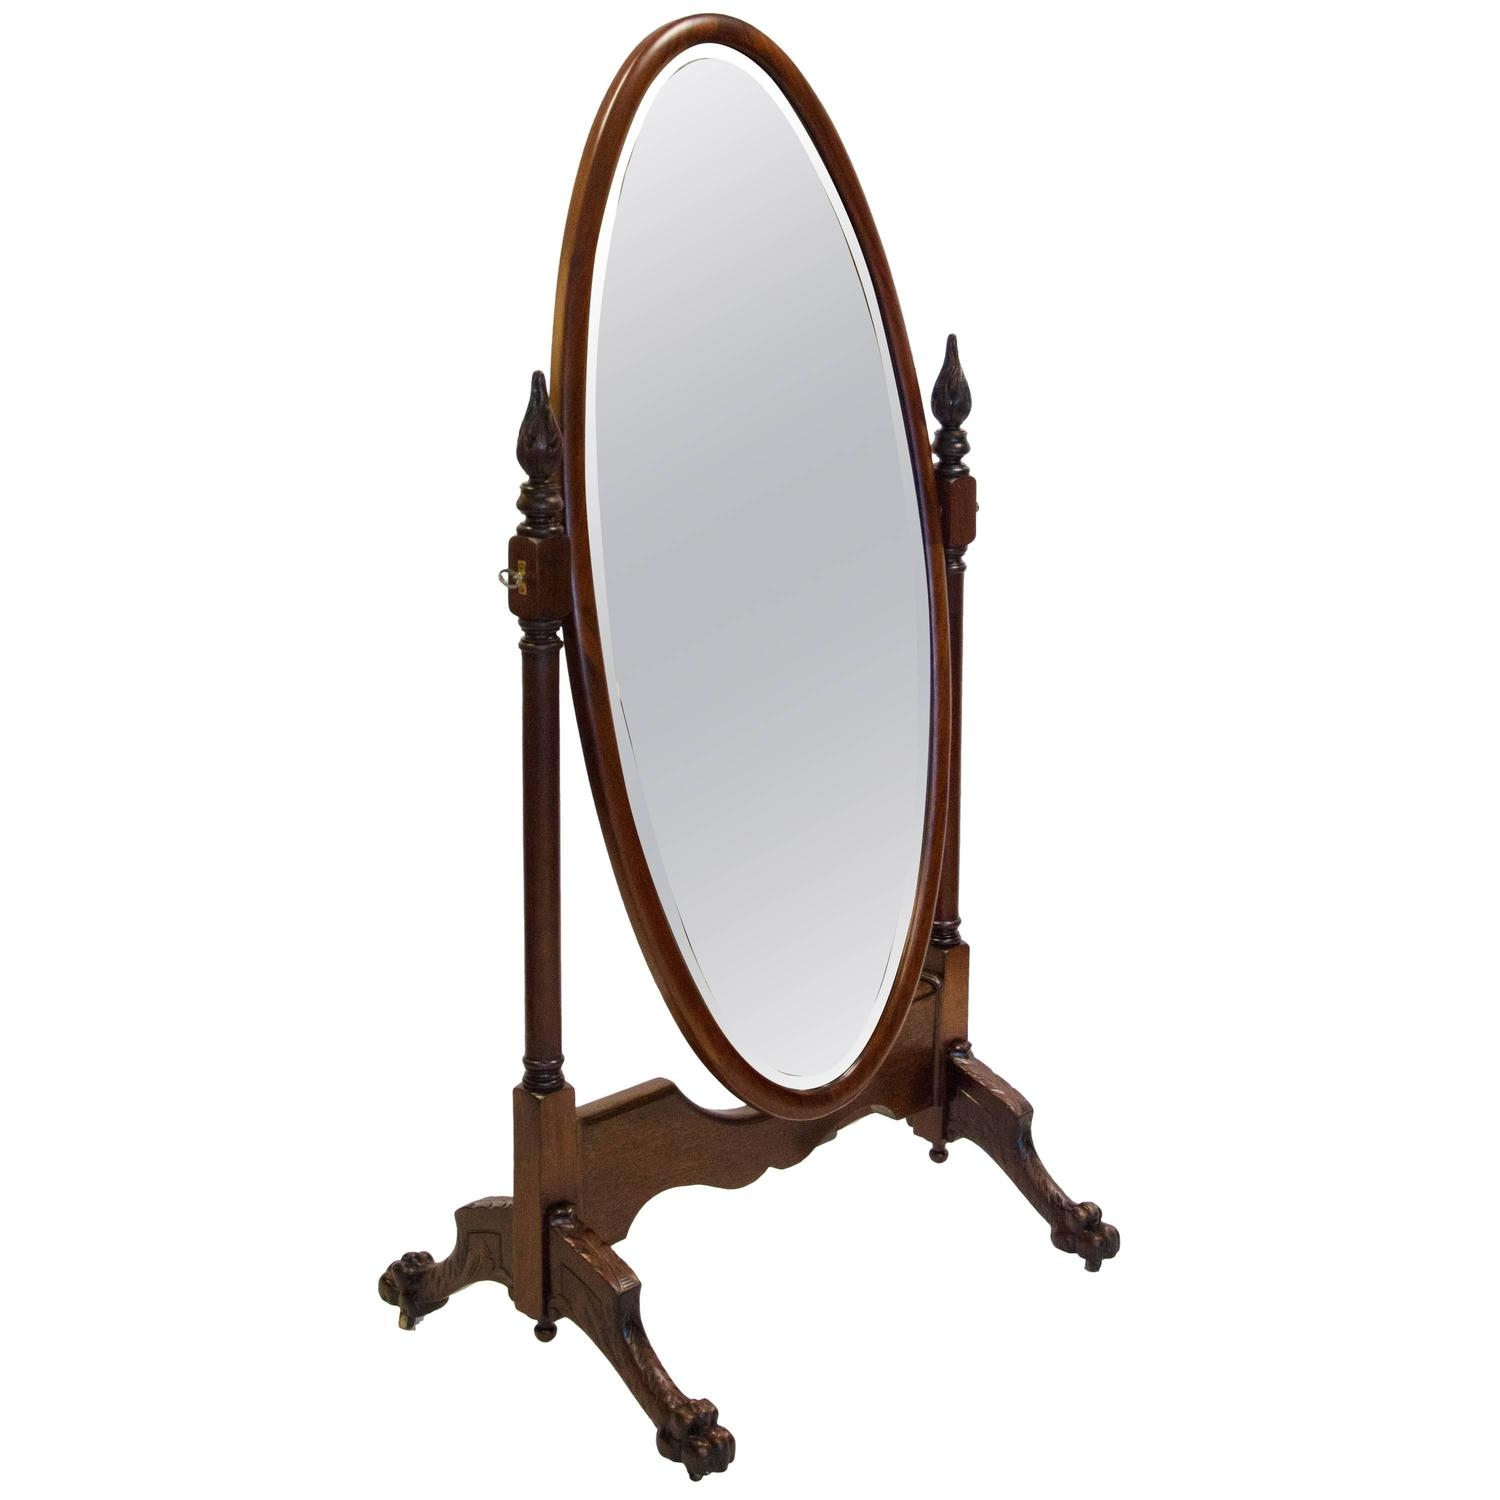 Antique Vintage Floor Mirrors And Full Length Mirrors For Sale For Vintage Full Length Mirrors (View 15 of 15)